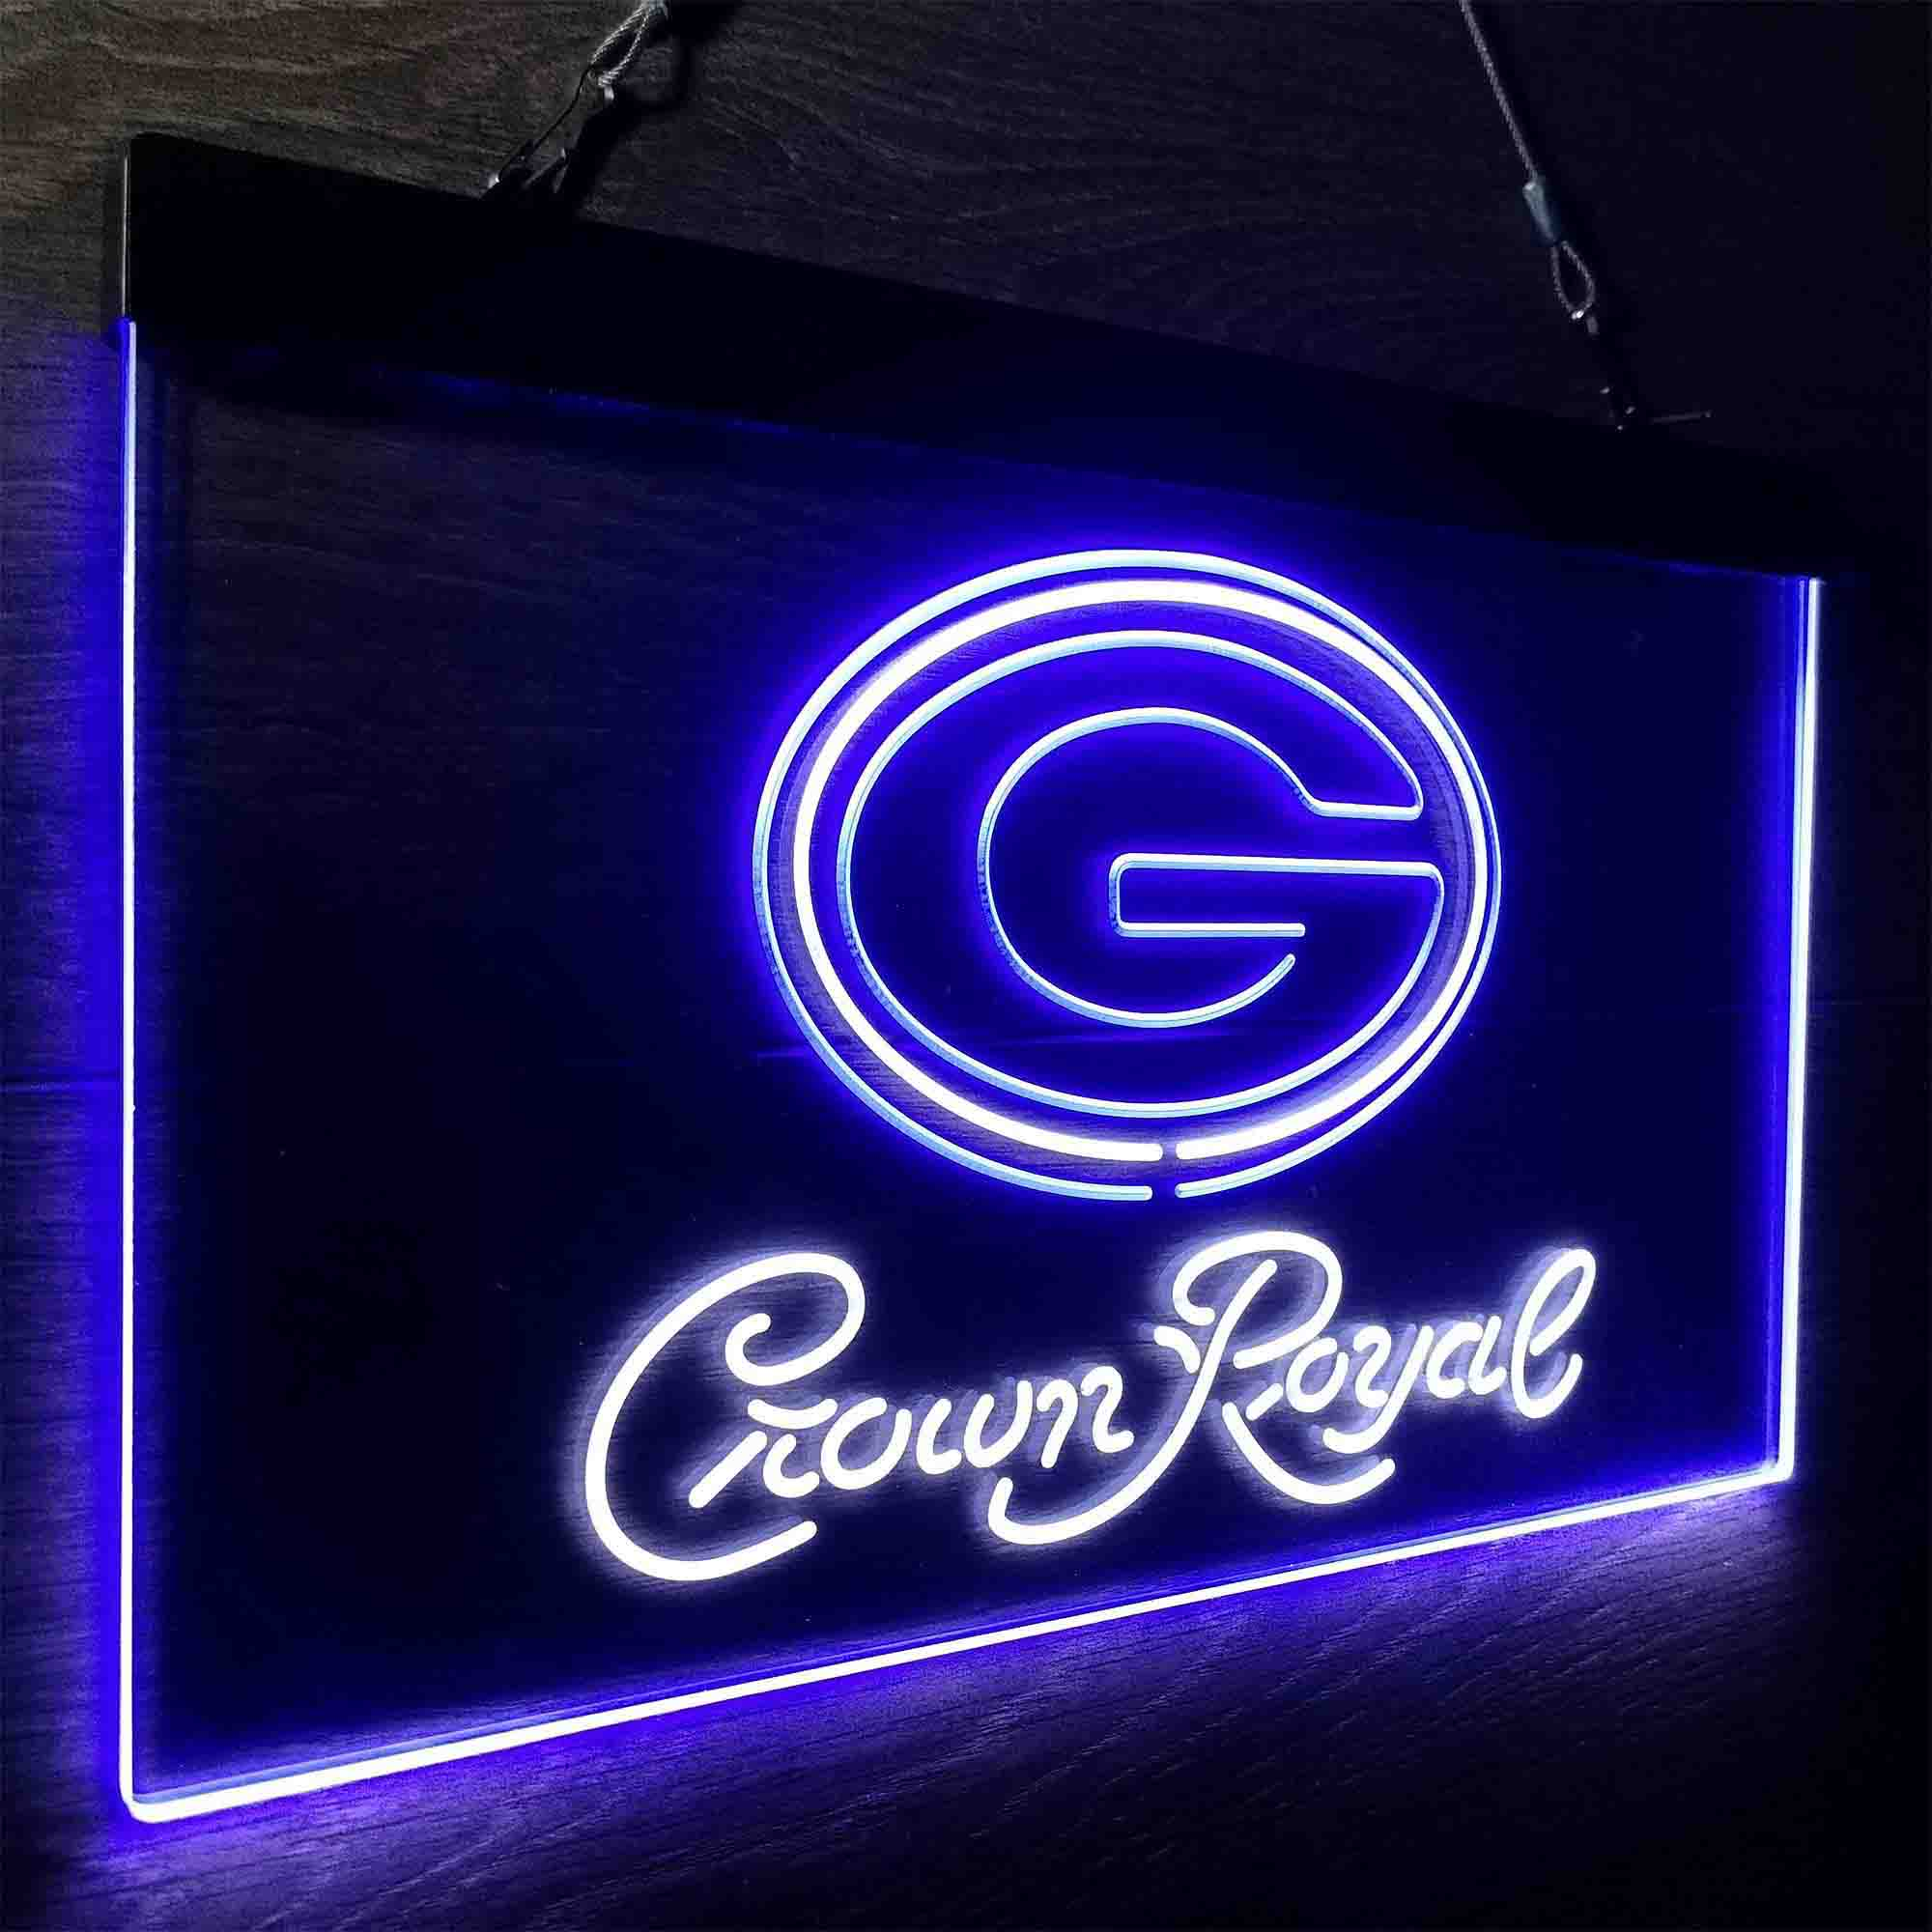 Crown Royal Bar Green Bay Packers Est. 1919 Neon-Like LED Sign